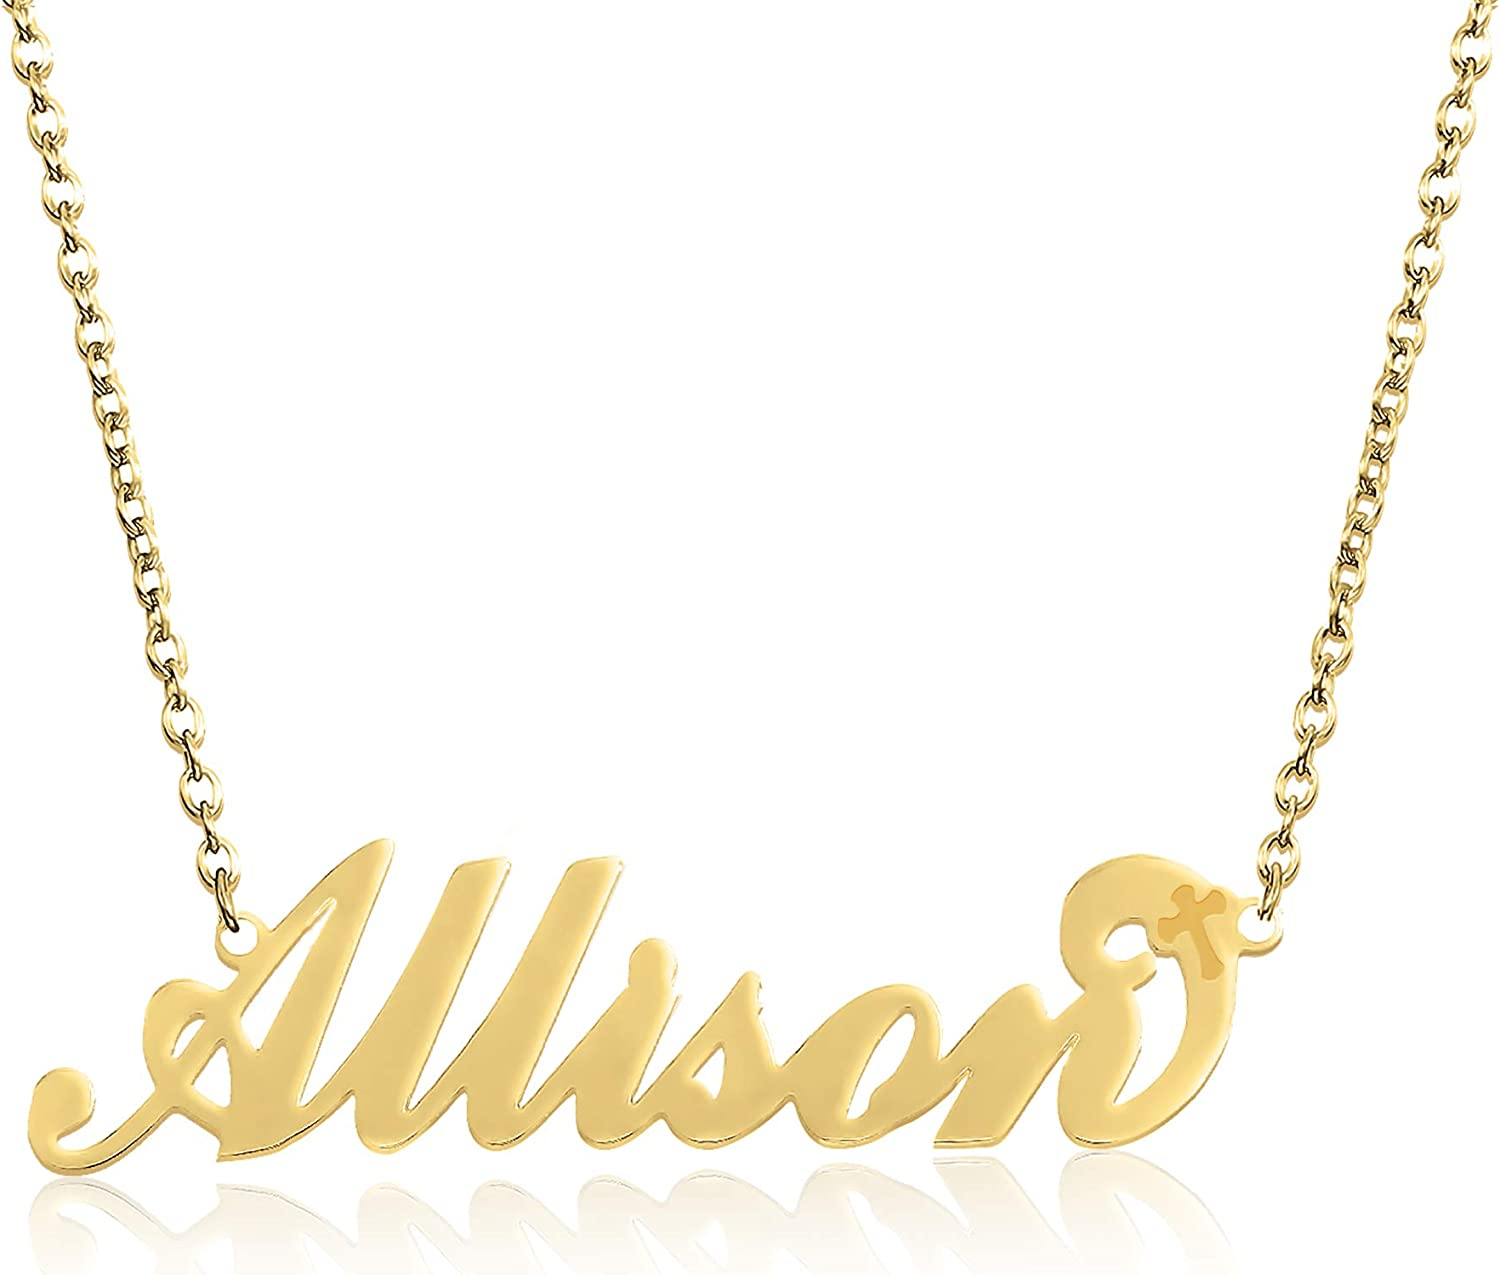 BeautyName Name Necklace Yellow Gold Stainless with Chain 17